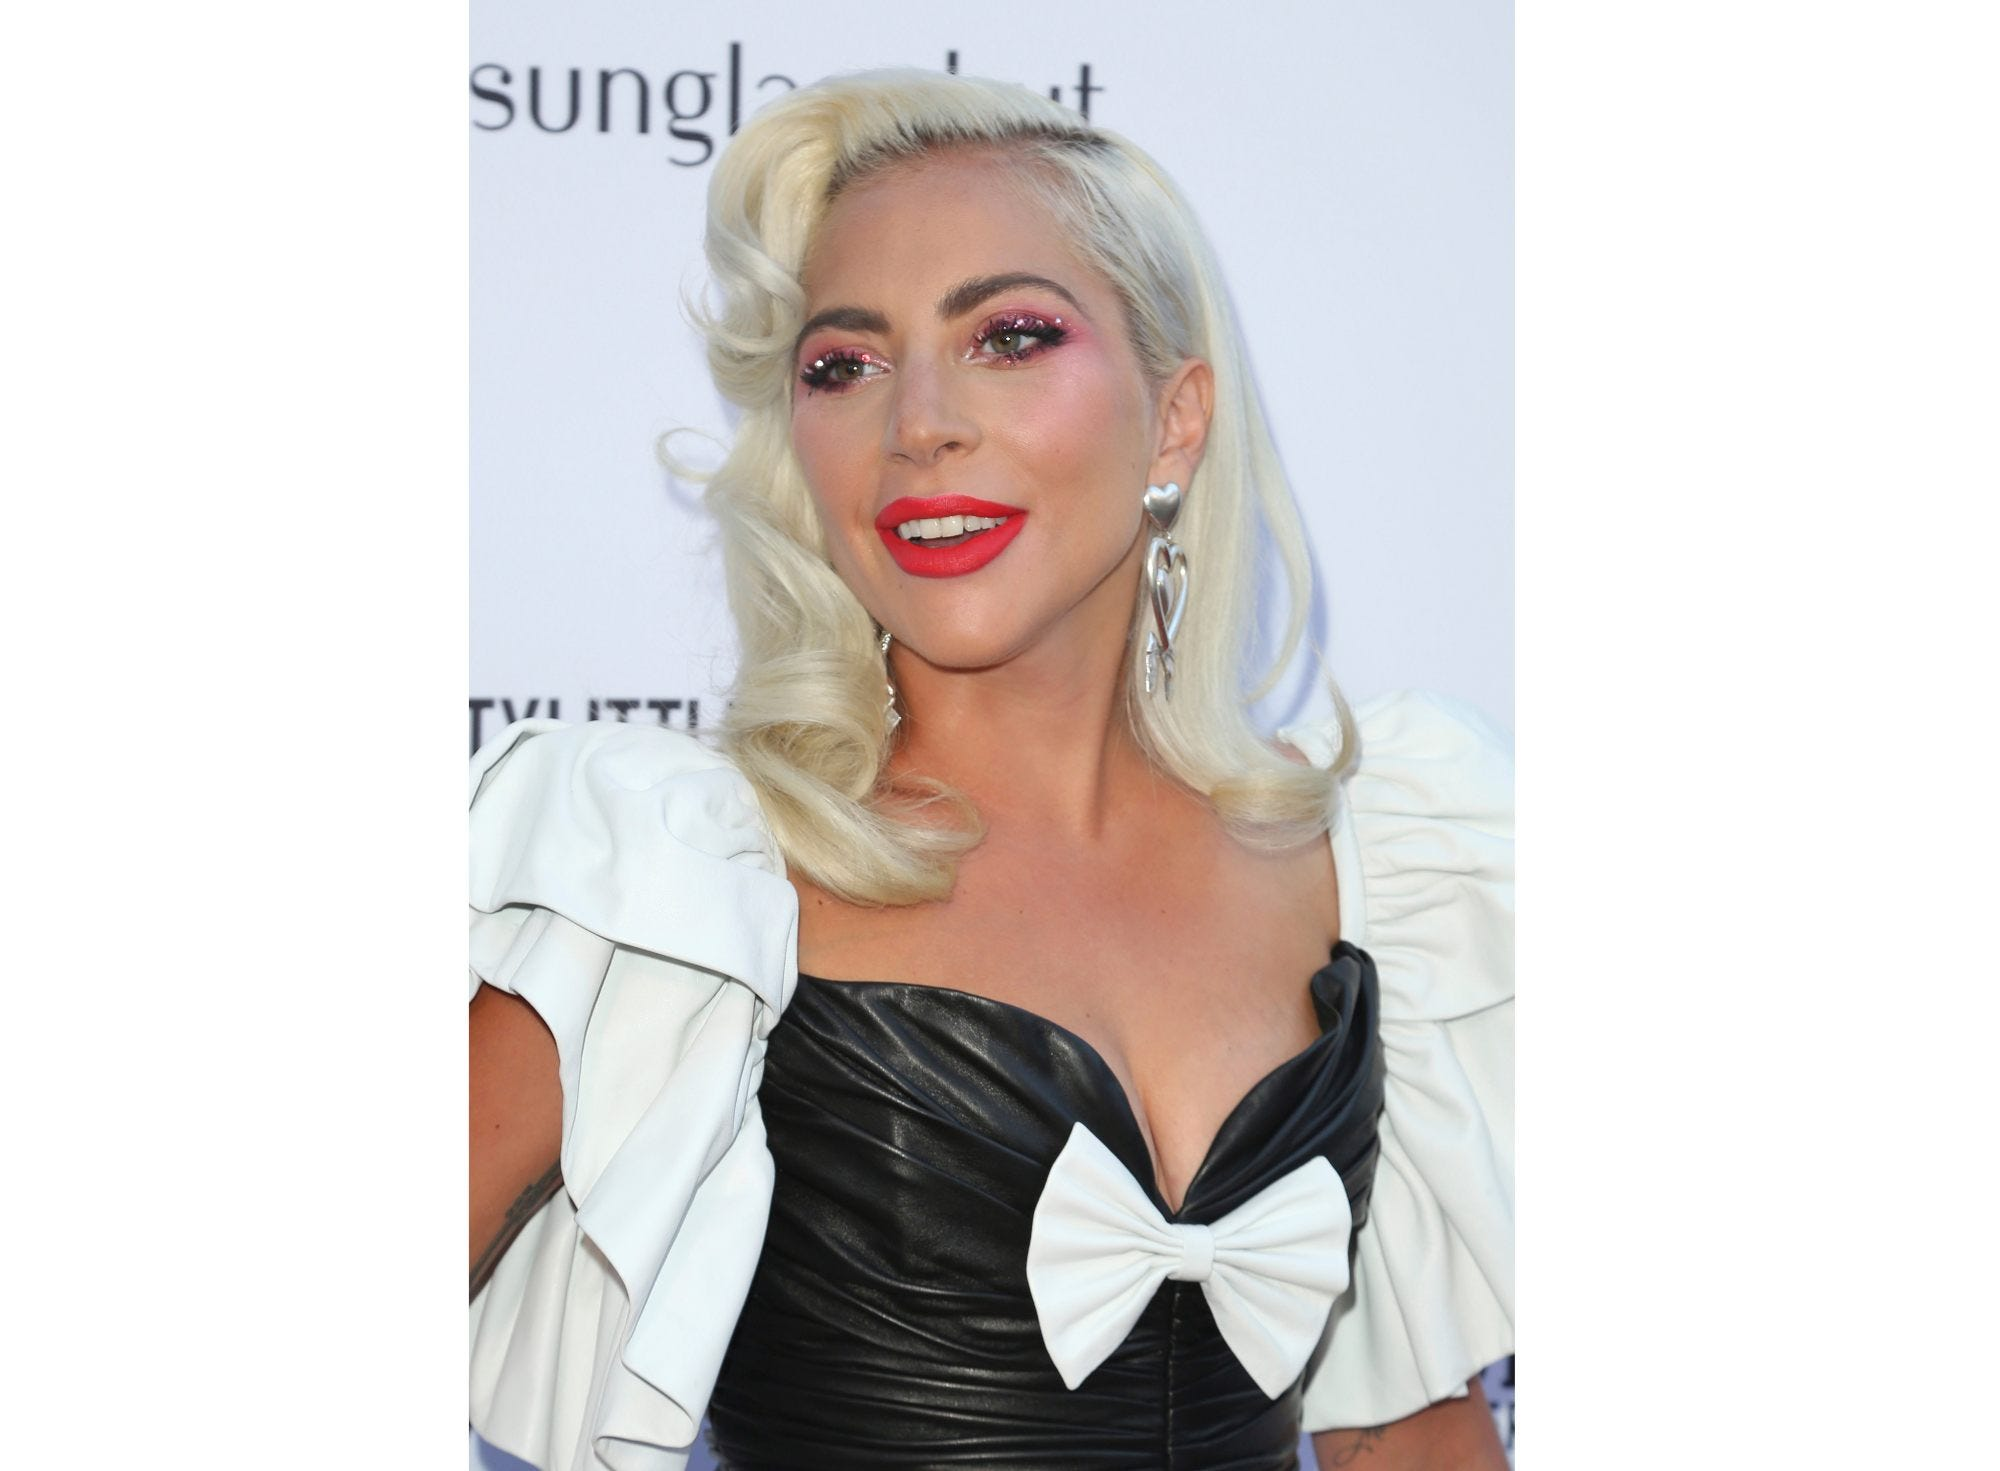 Lady Gaga and her mother offer candid advice for opening up about mental health to parents